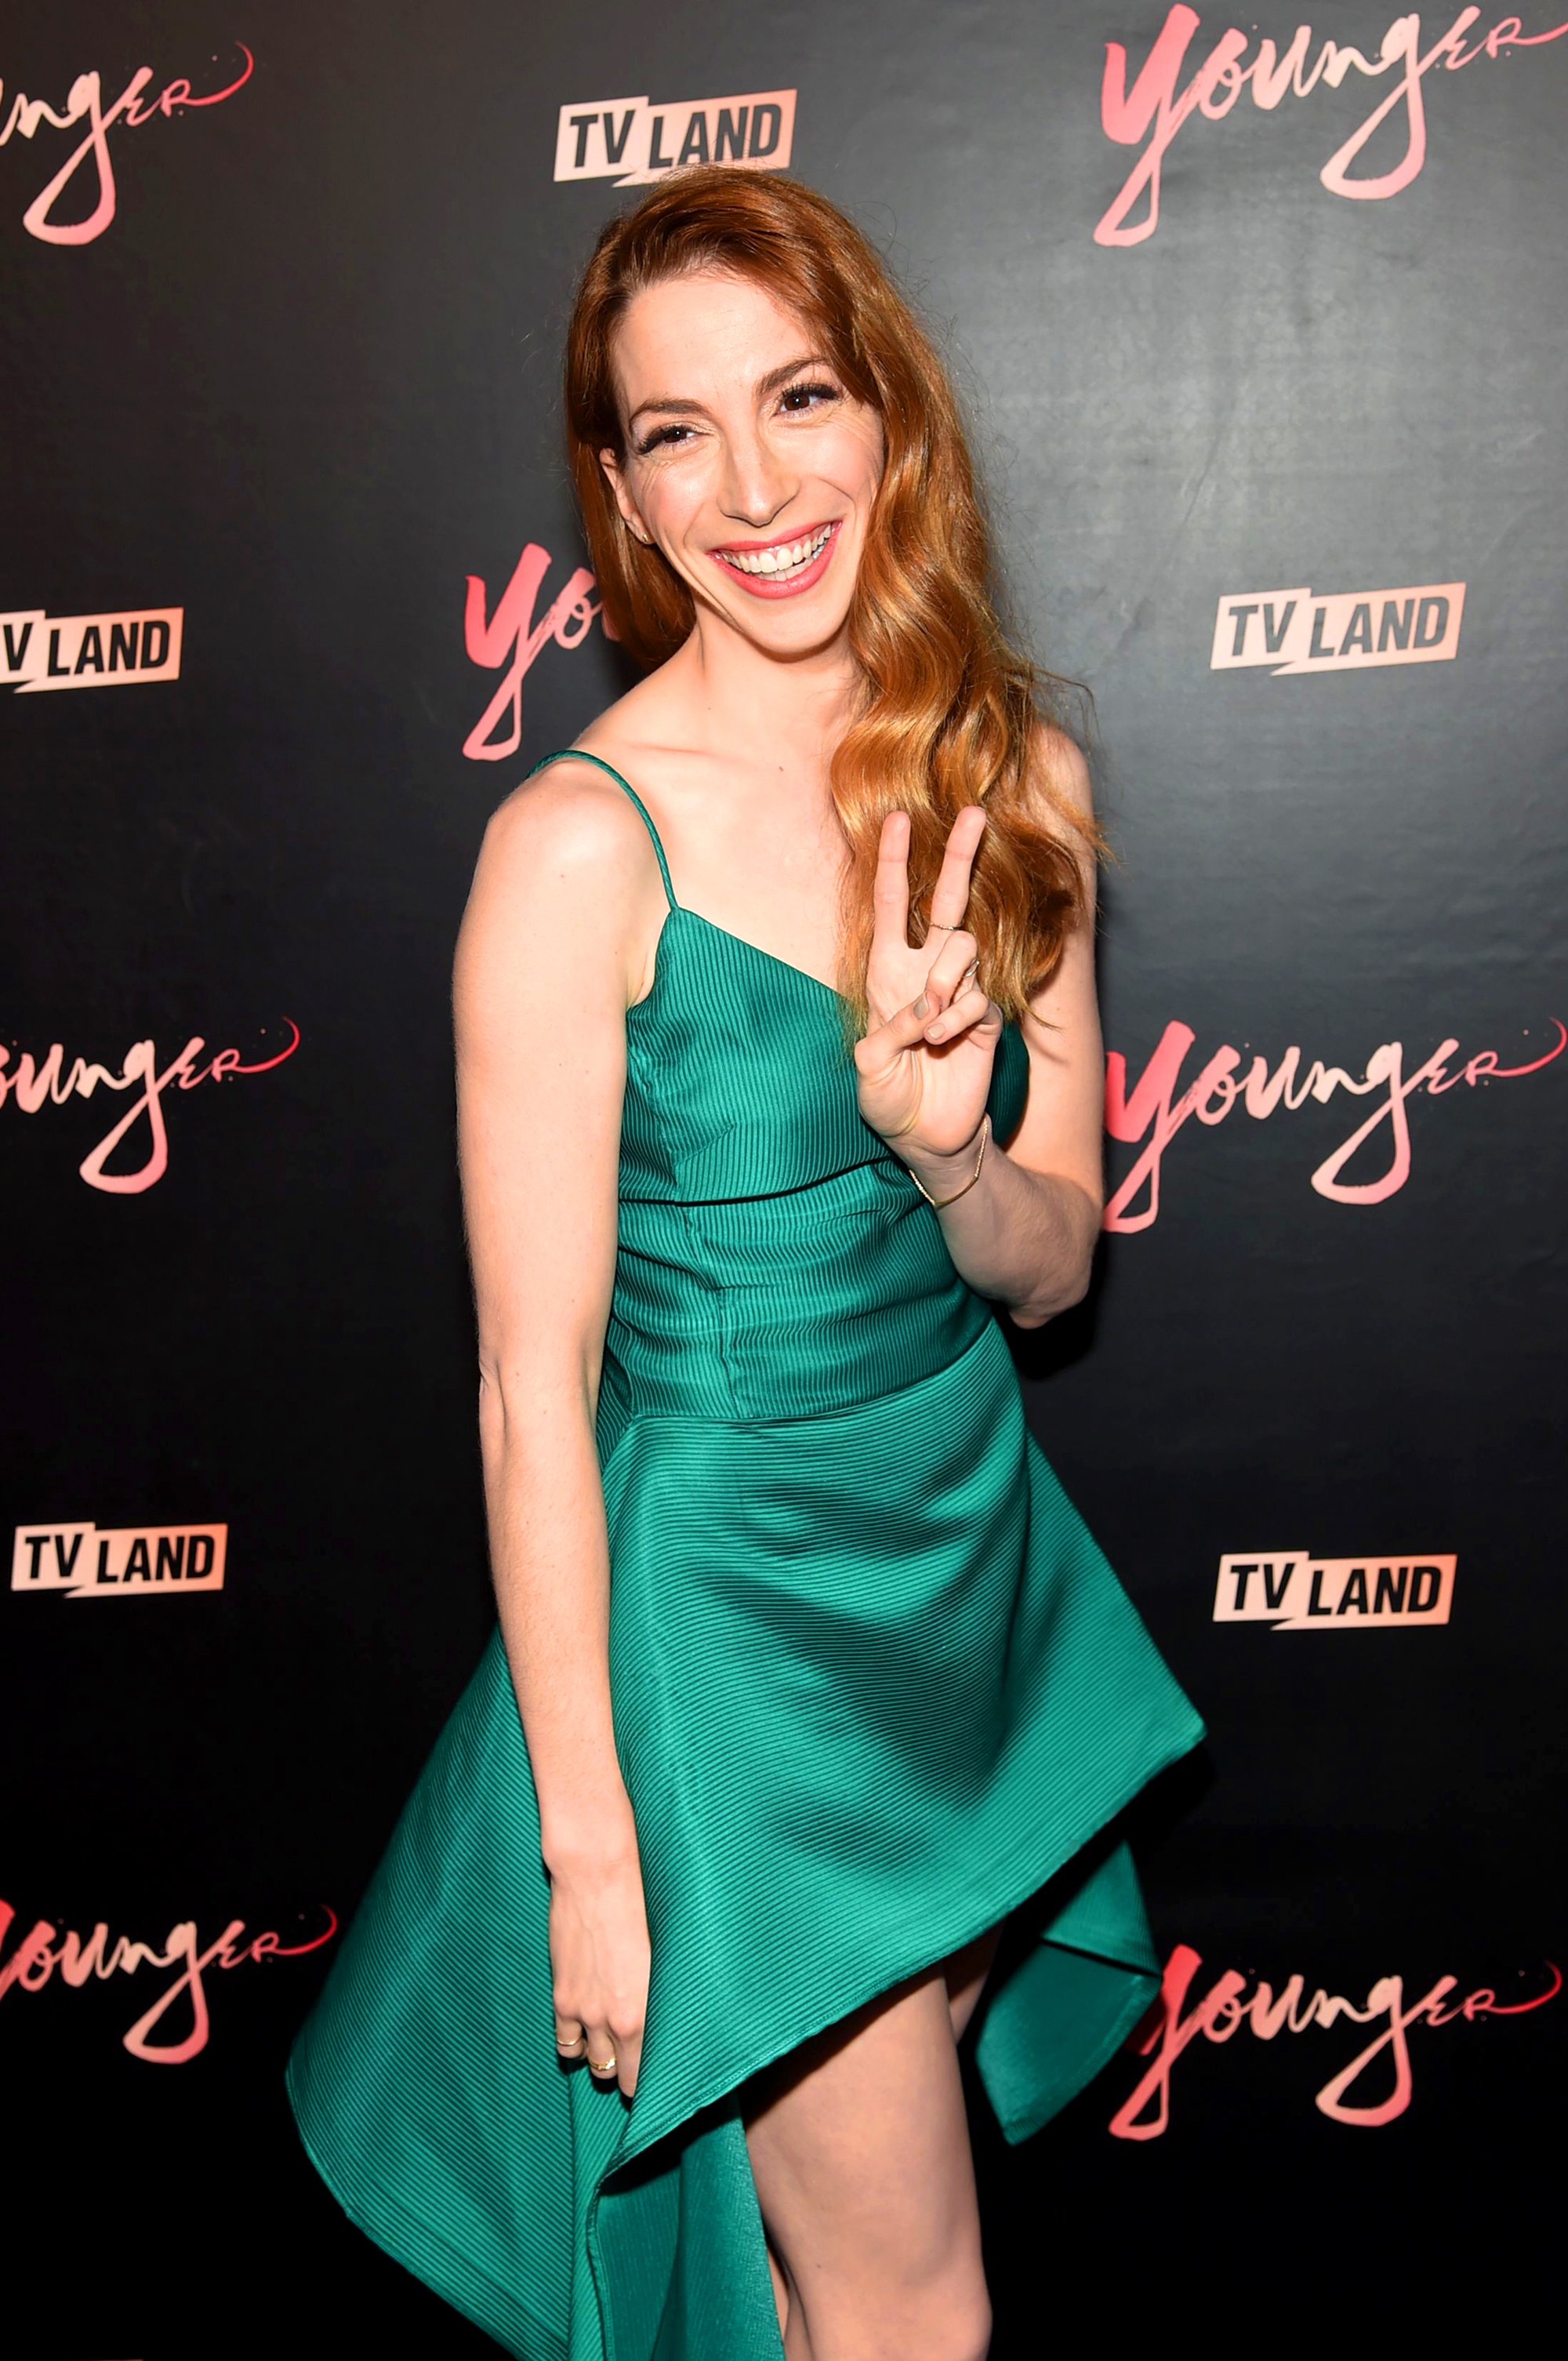 The Stars Joining Fall TV - Younger ' s sassy BFF is scrubbing up for NBC's Chicago Med . Molly Bernard plays Elsa Curry, a med student who butts heads with her fellow doctors since her motives differ from most of the staff at Med – since she's going into Bio-Med, patient care isn't of interest to her.